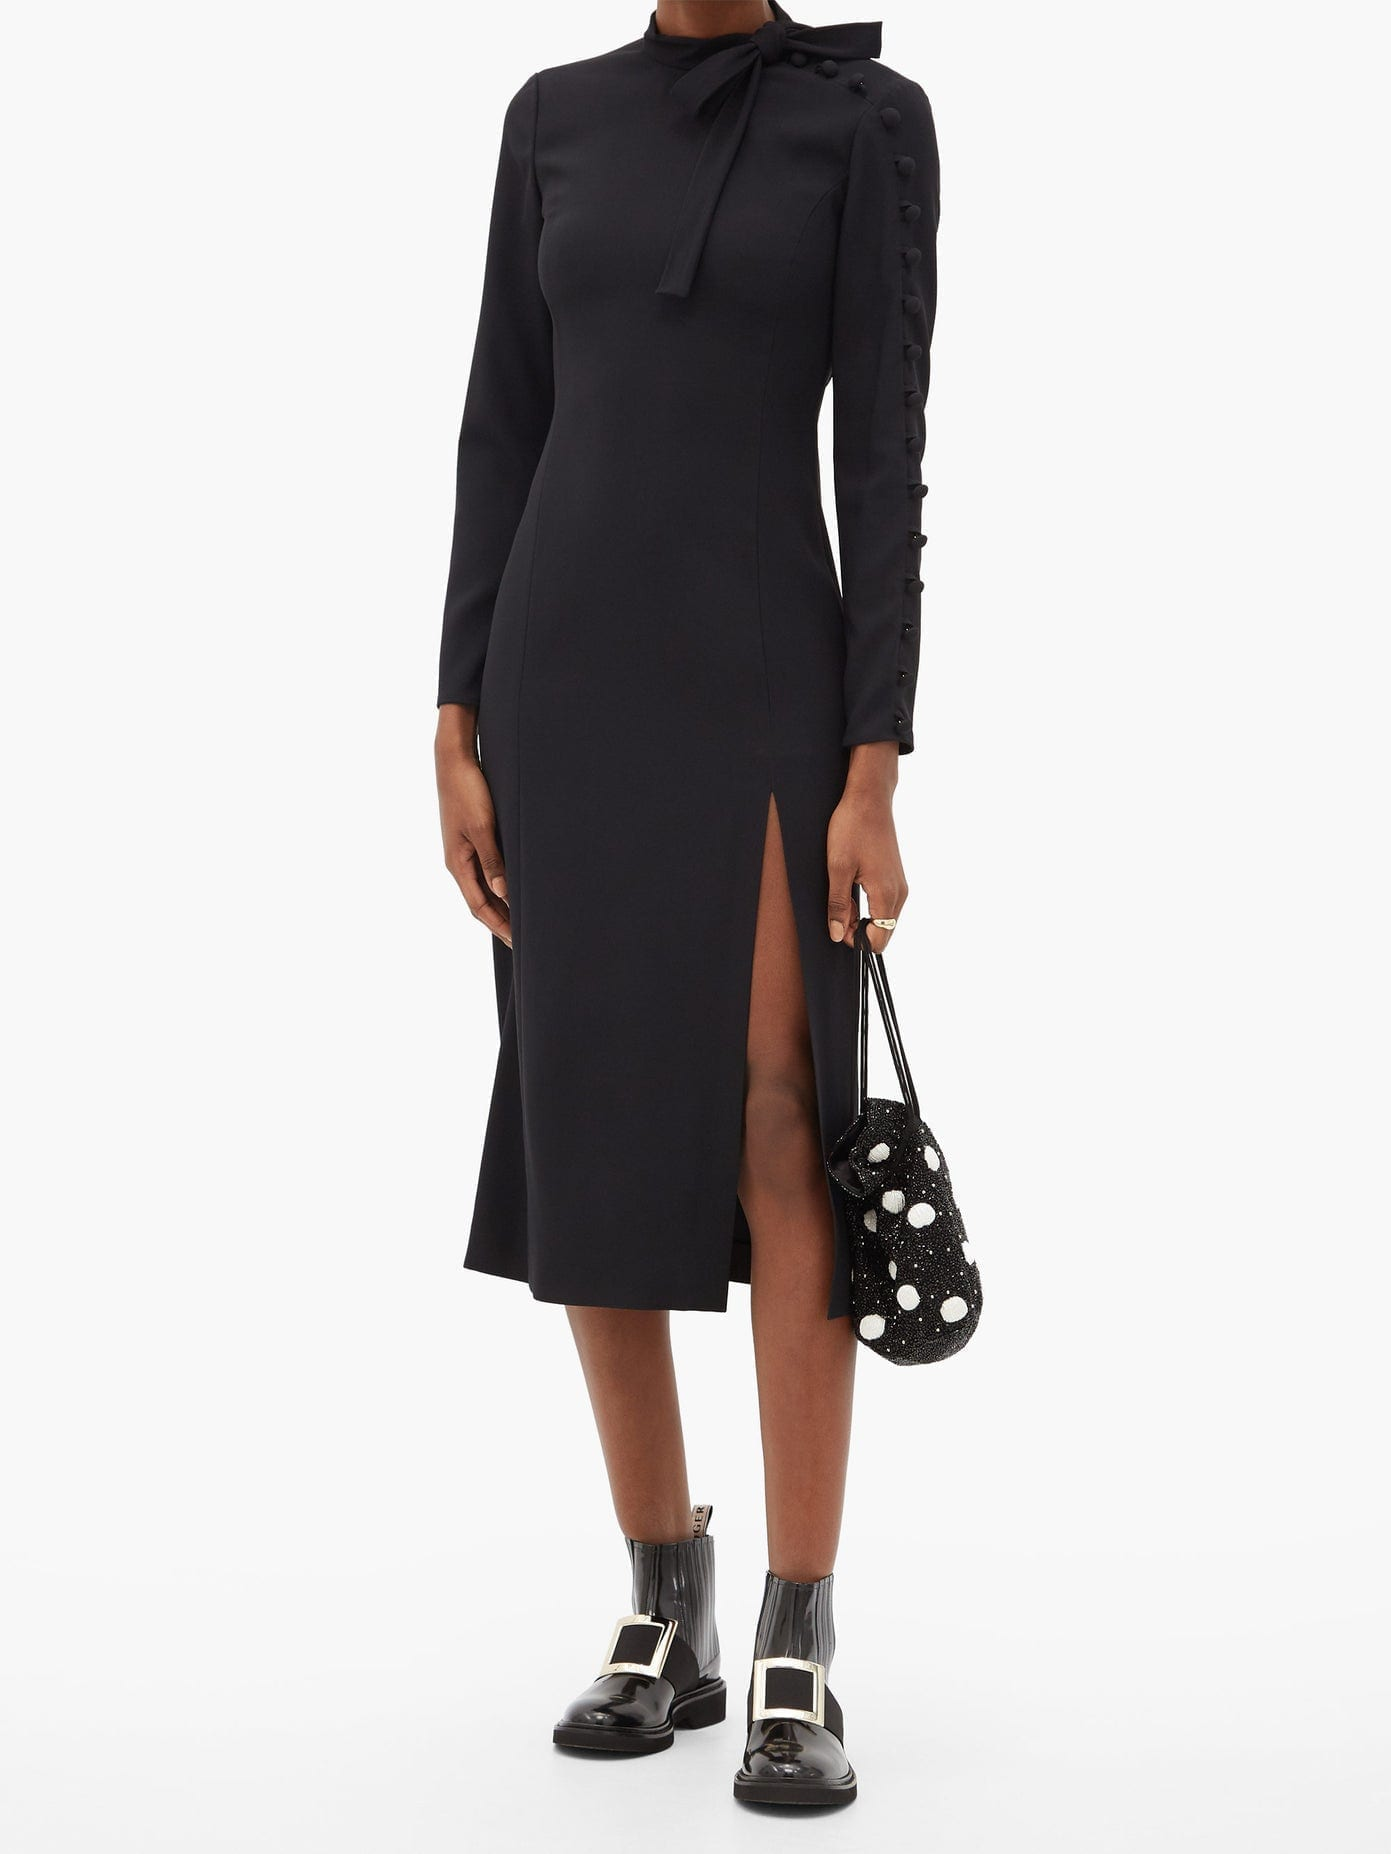 REDVALENTINO Tie-neck Crepe Midi Dress